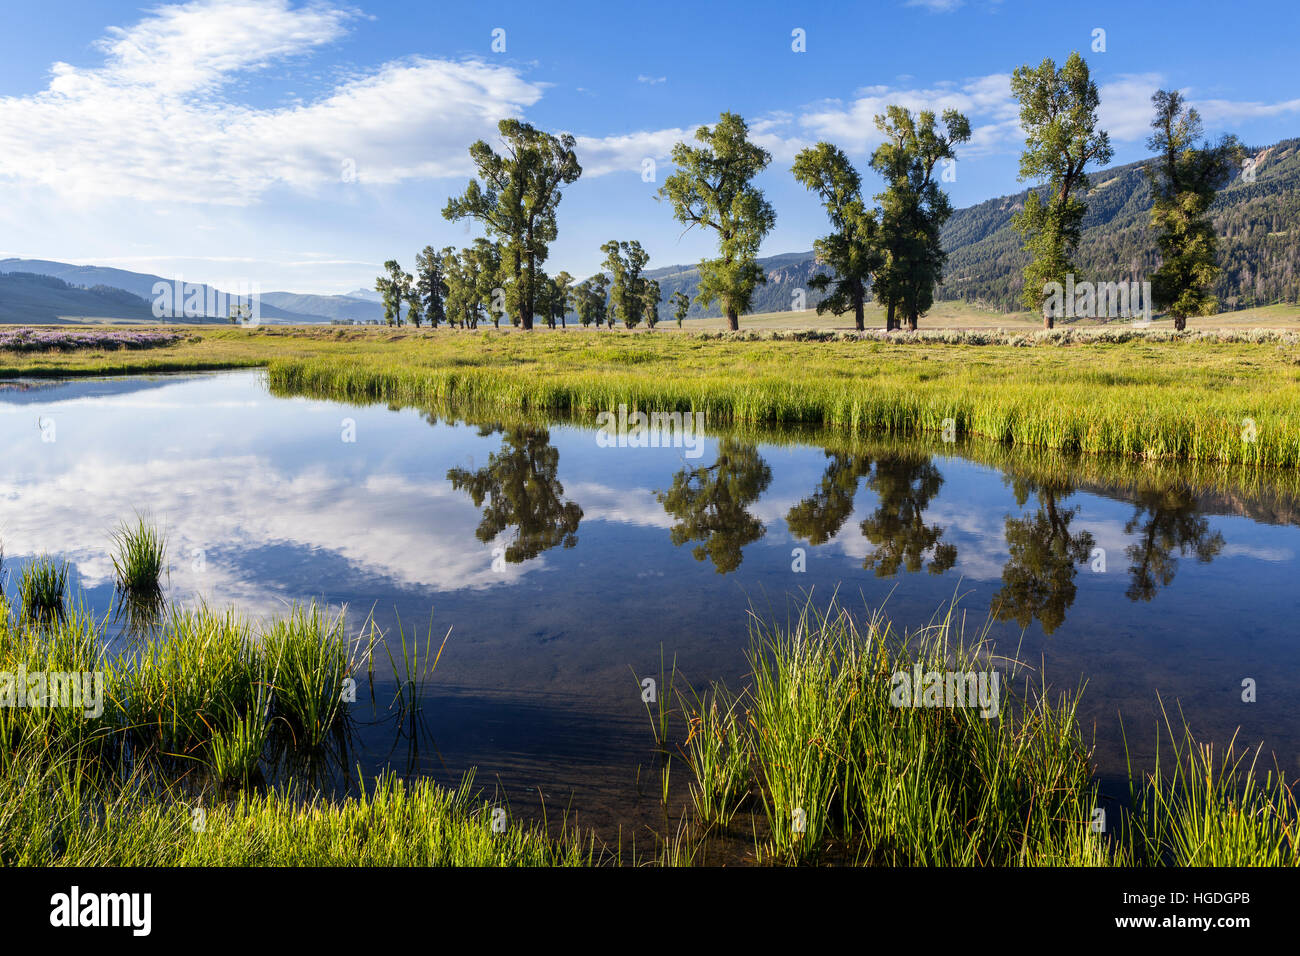 WY02025-00...WYOMING - Sunrise over the Lamar Valley with trees reflecting in the Lamar River,  Yellowstone National - Stock Image